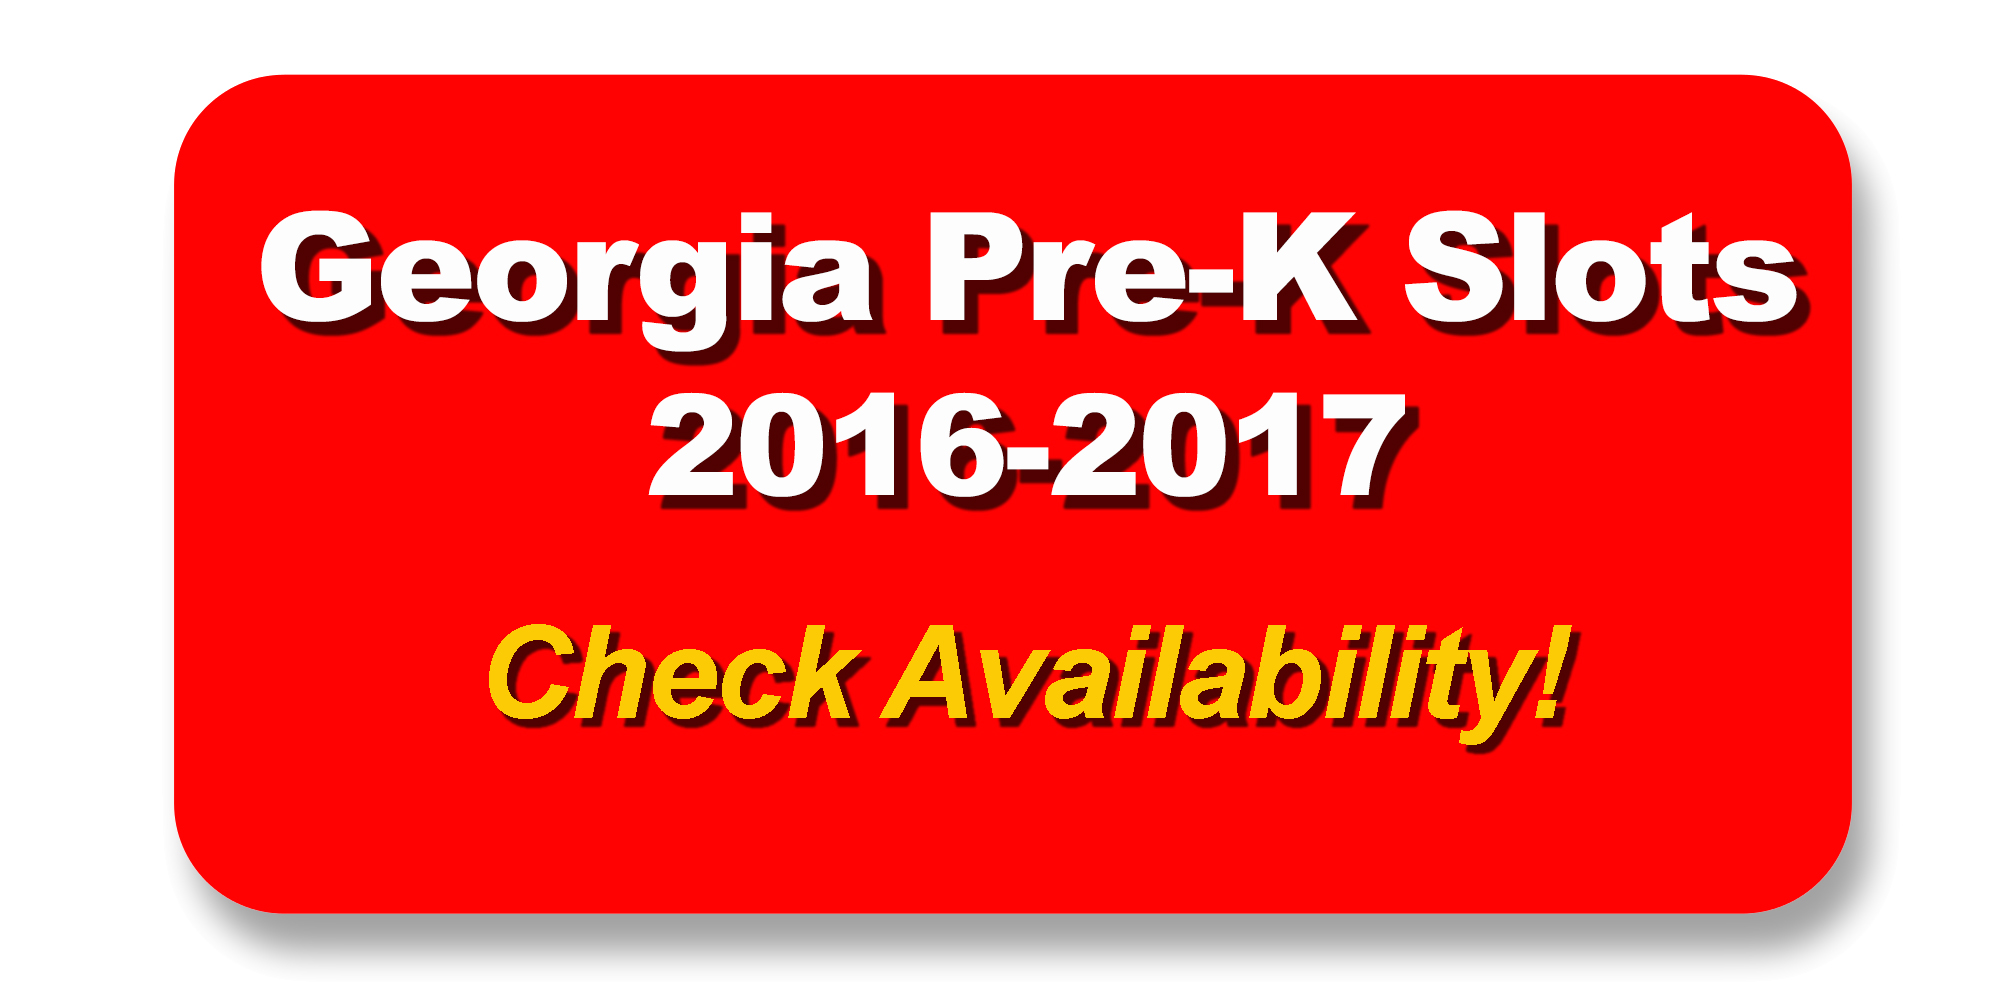 Georgia Pre-k Availability